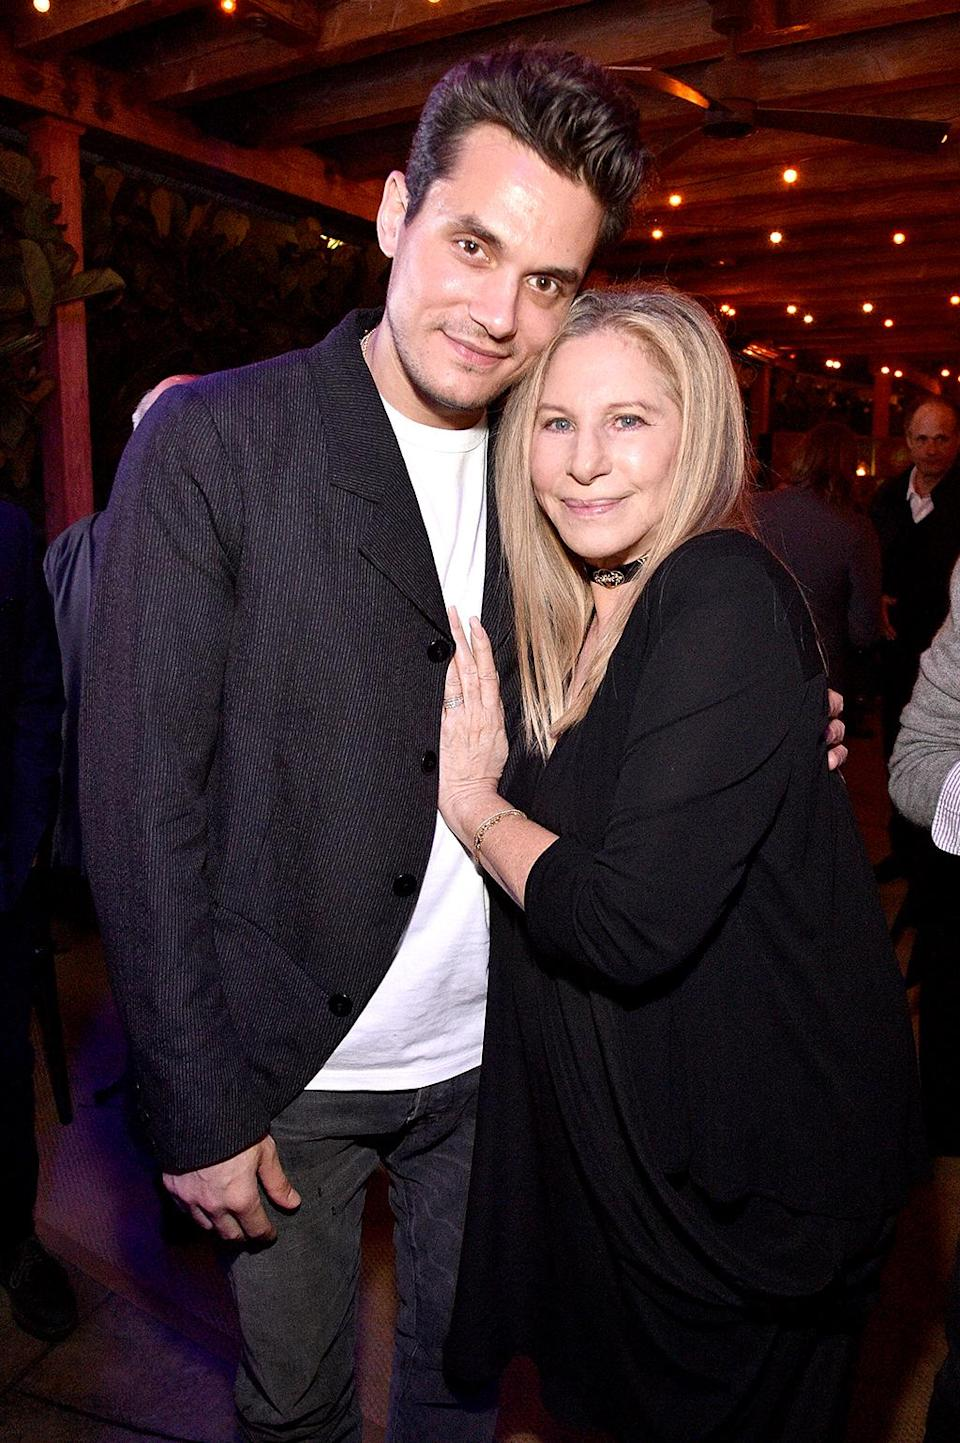 <p>The friends embraced at her 75th birthday bash Monday, held at Cafe Habana in Malibu, Calif. Babyface, Cindy Crawford (with husband, Rande Gerber, an investor in the restaurant), and Pierce Brosnan were also at the star-studded soirée. (Photo: Kevin Mazur/WireImage) </p>